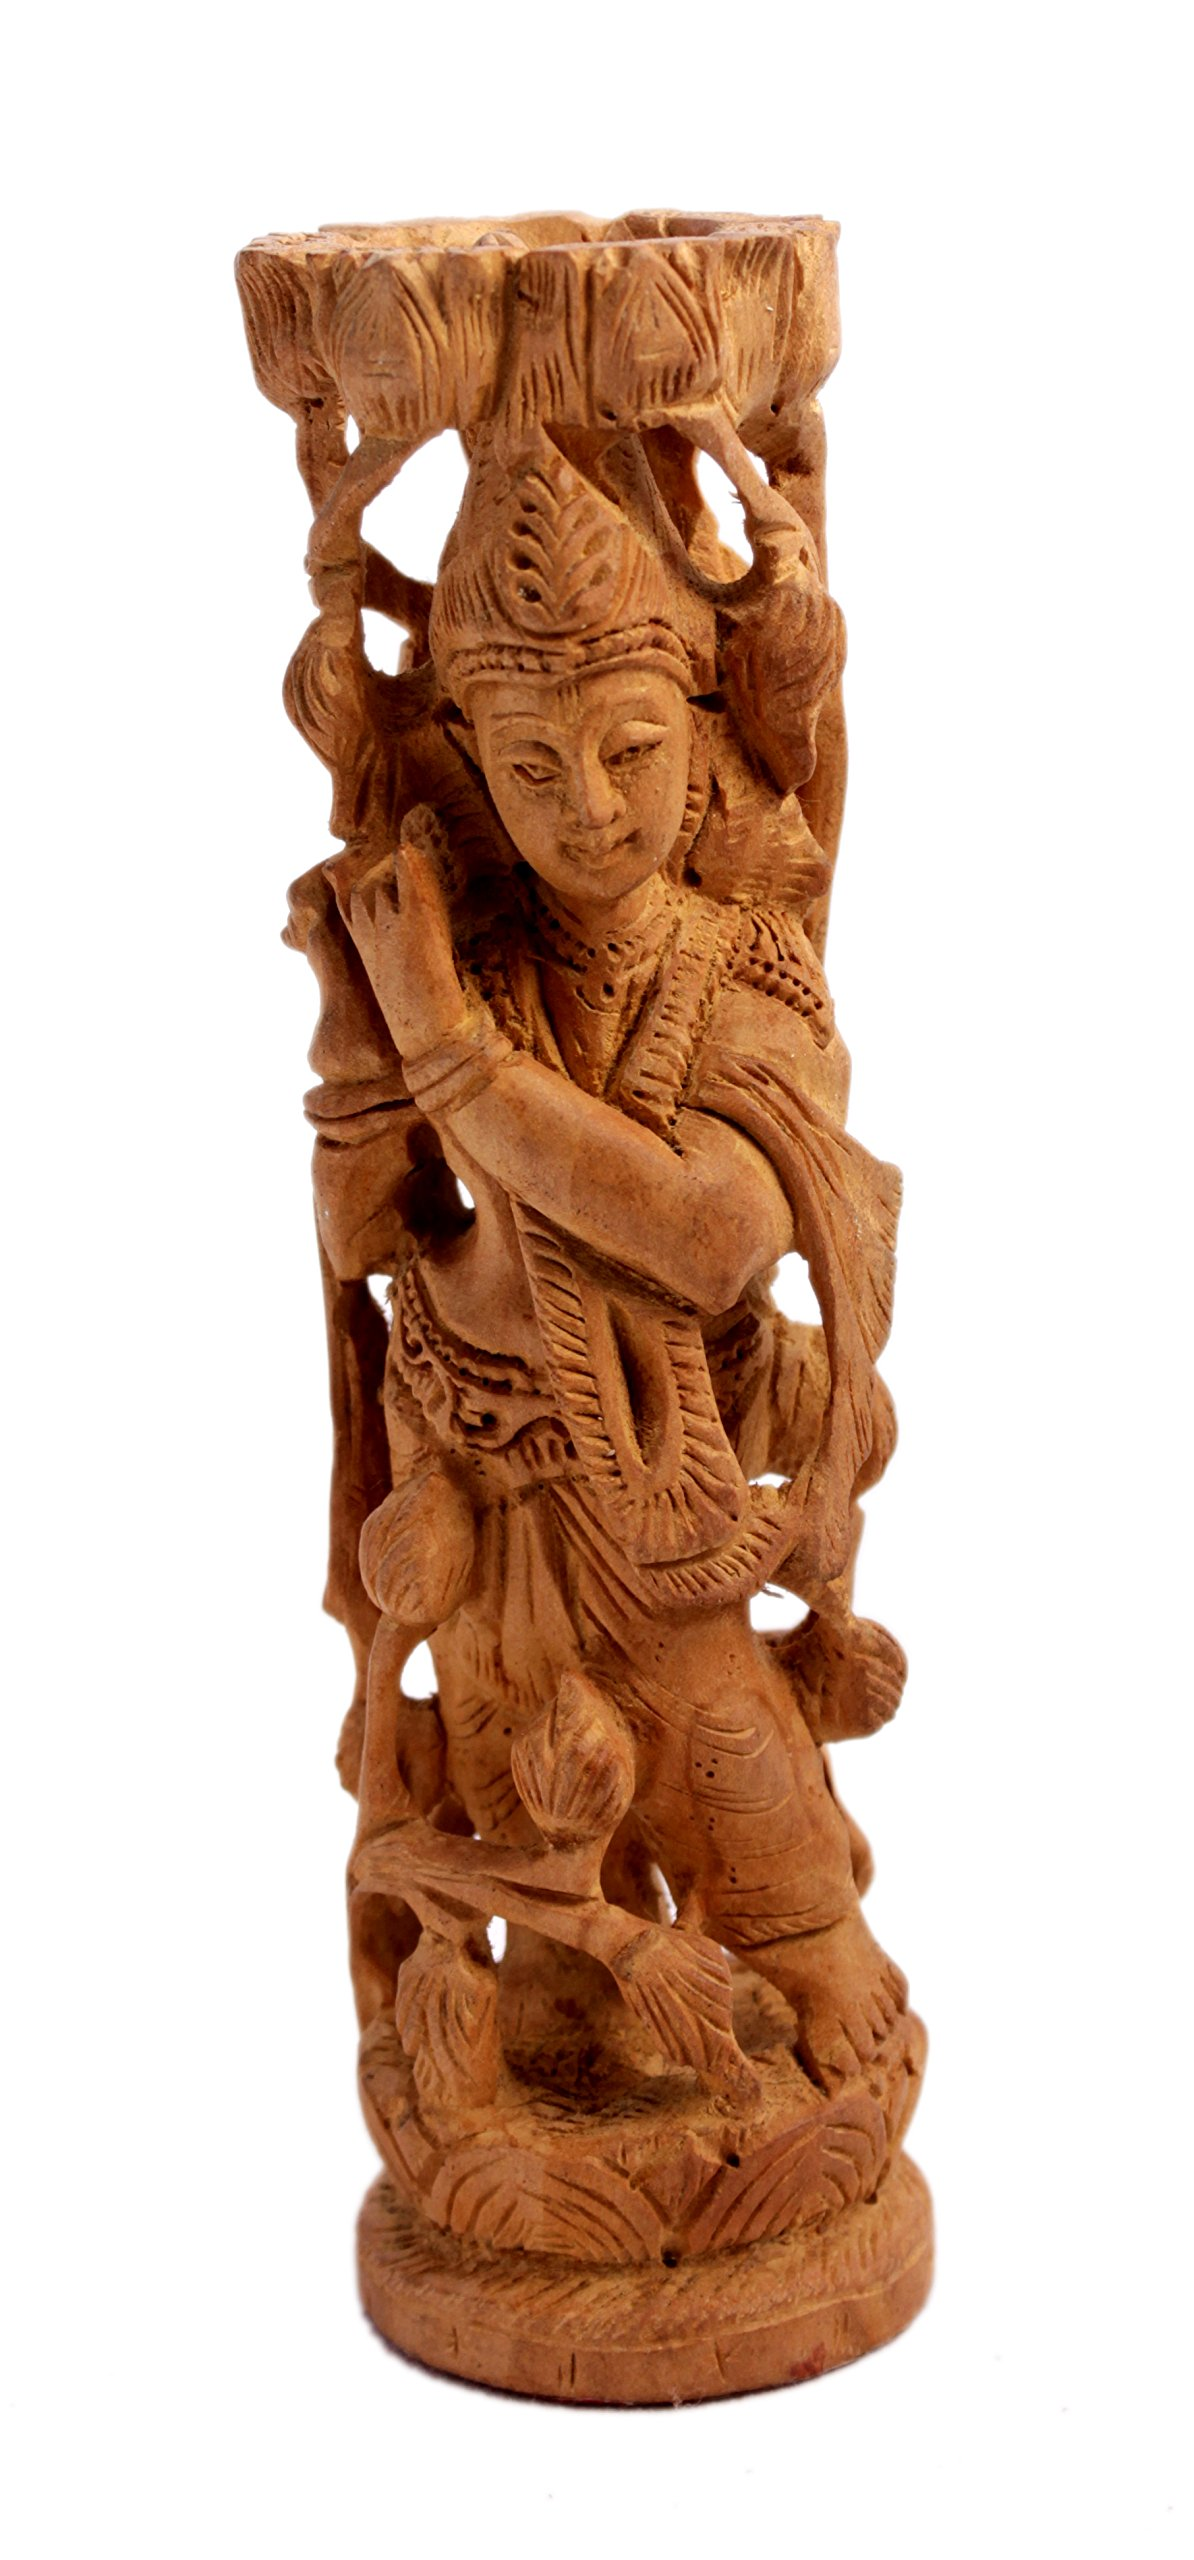 A Hand Carved Natural Wooden Lord Krishna Statue Idol 6.4 inches